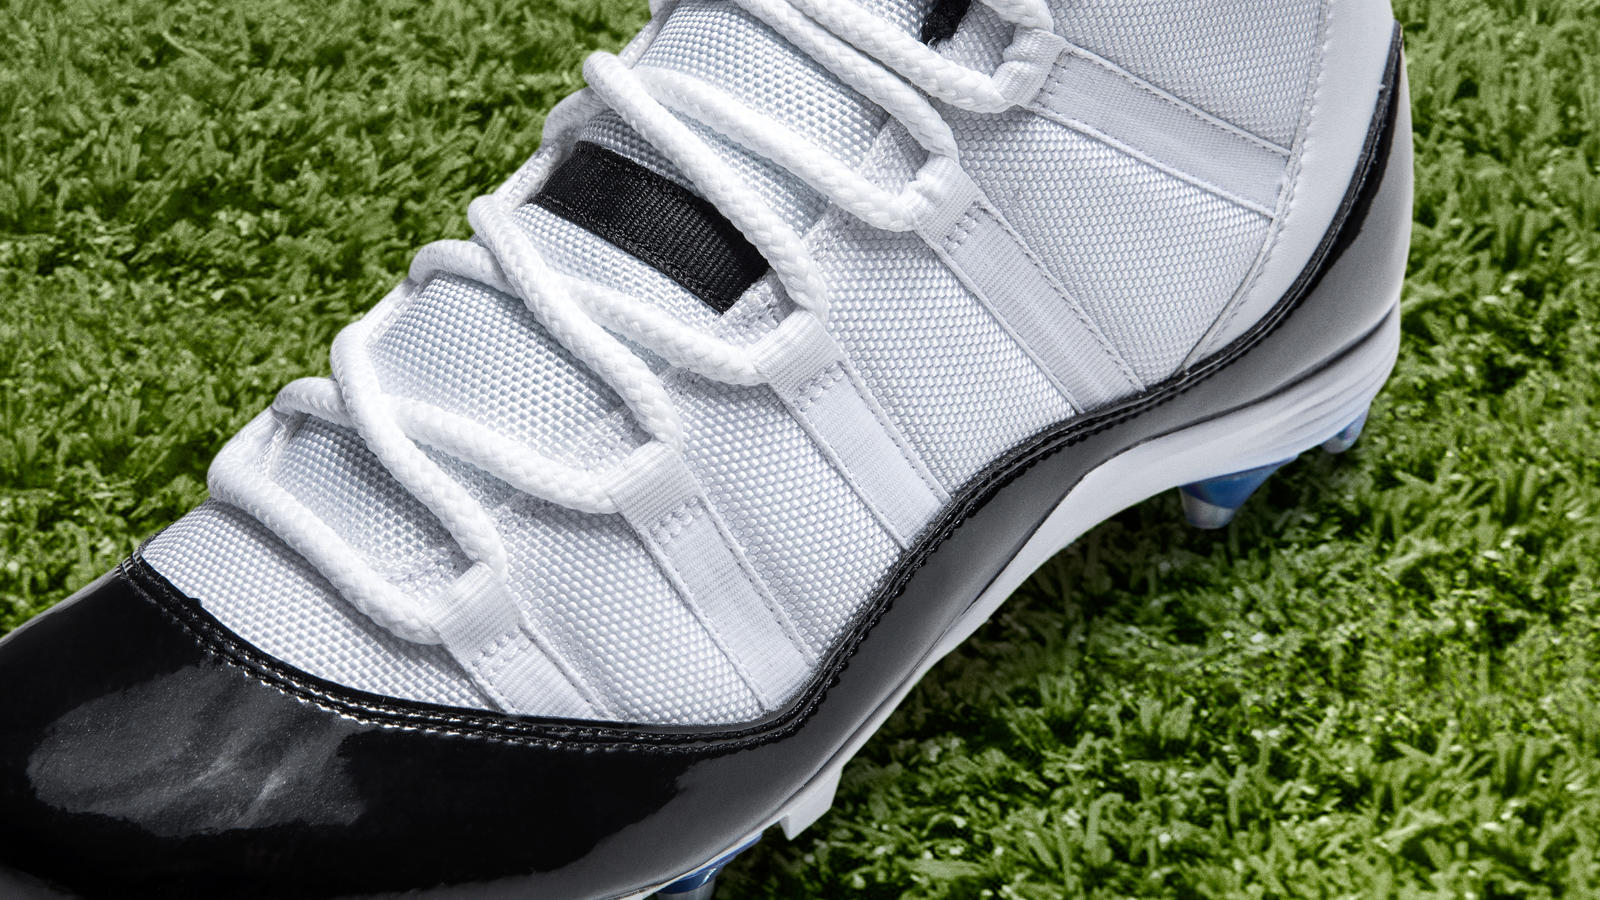 Jordan XI Football Cleat  2